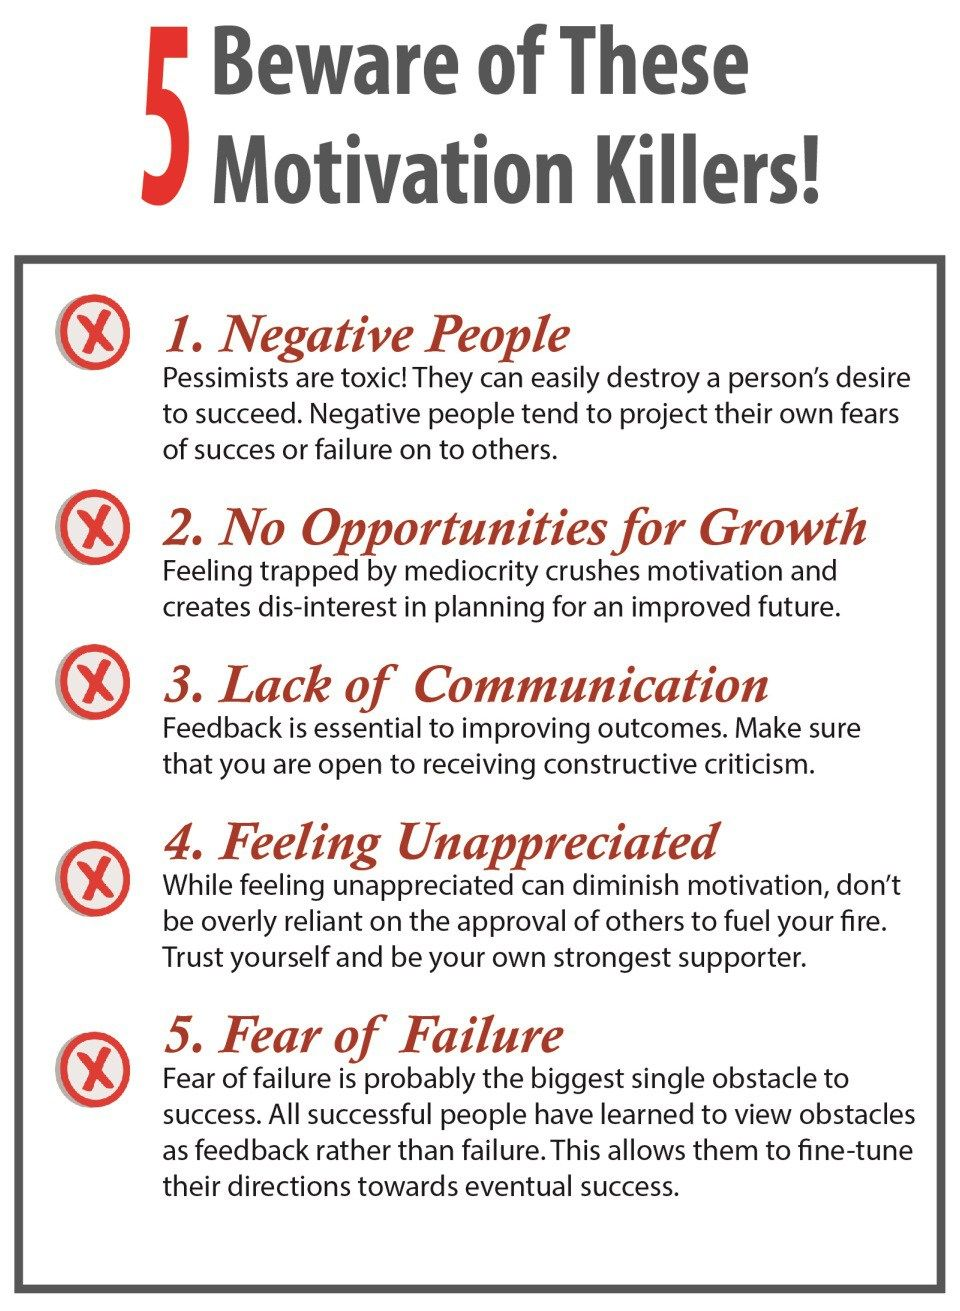 Beware These Motivation Killers Infographic Motivation